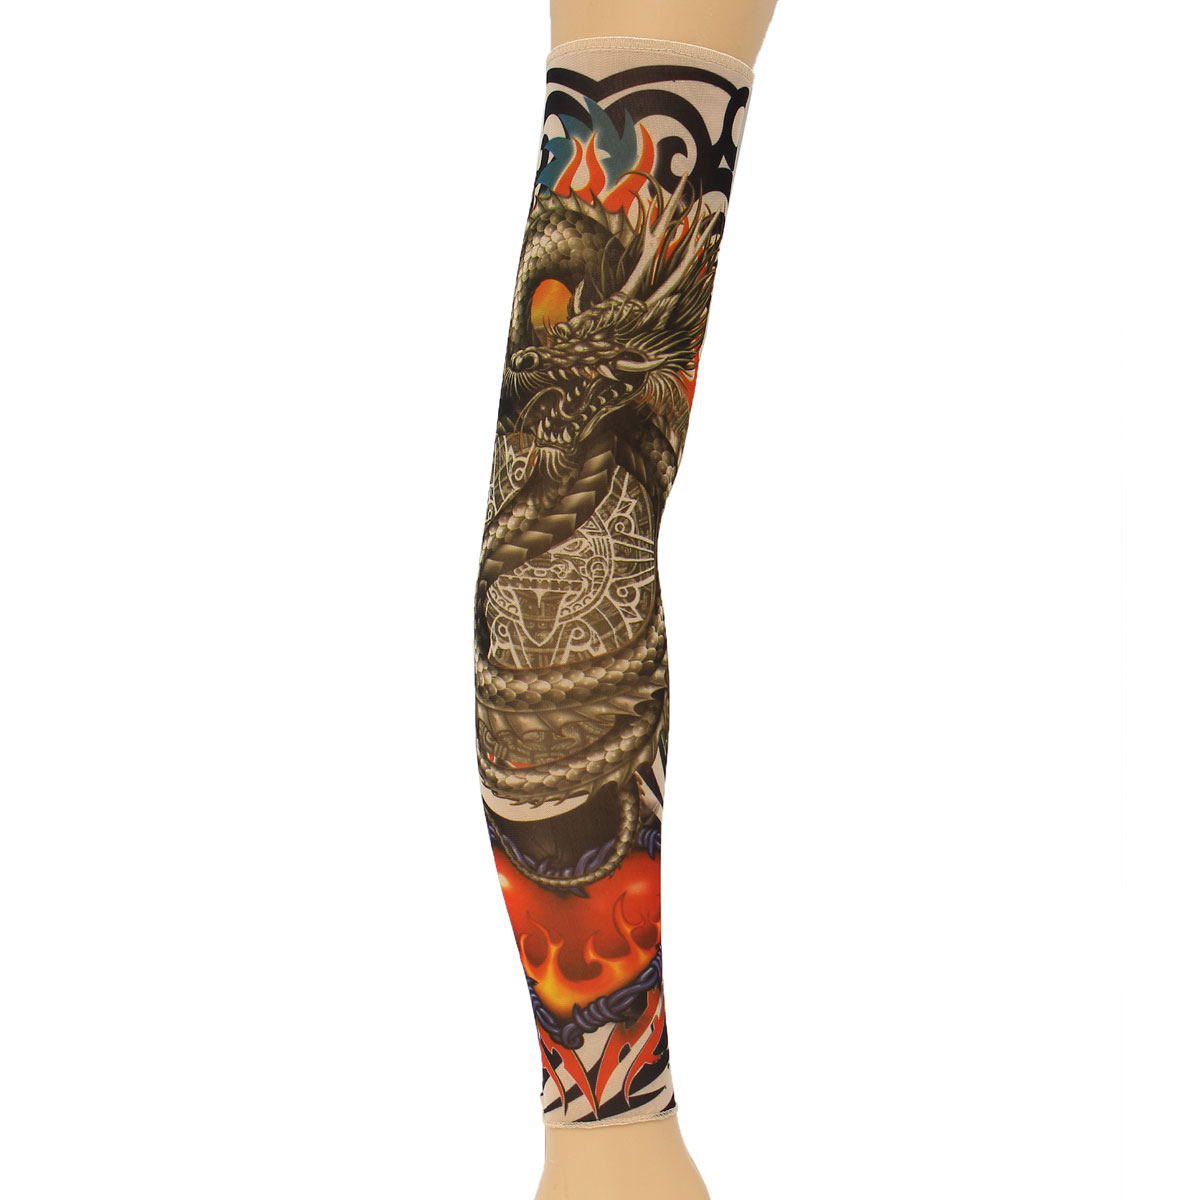 OUTERDO 1Pc Dragon Tattoo Sleeves Nylon Spandex Stretchy Temporary Arm Stockings Mix Colors Soft For Men Women Cyclists